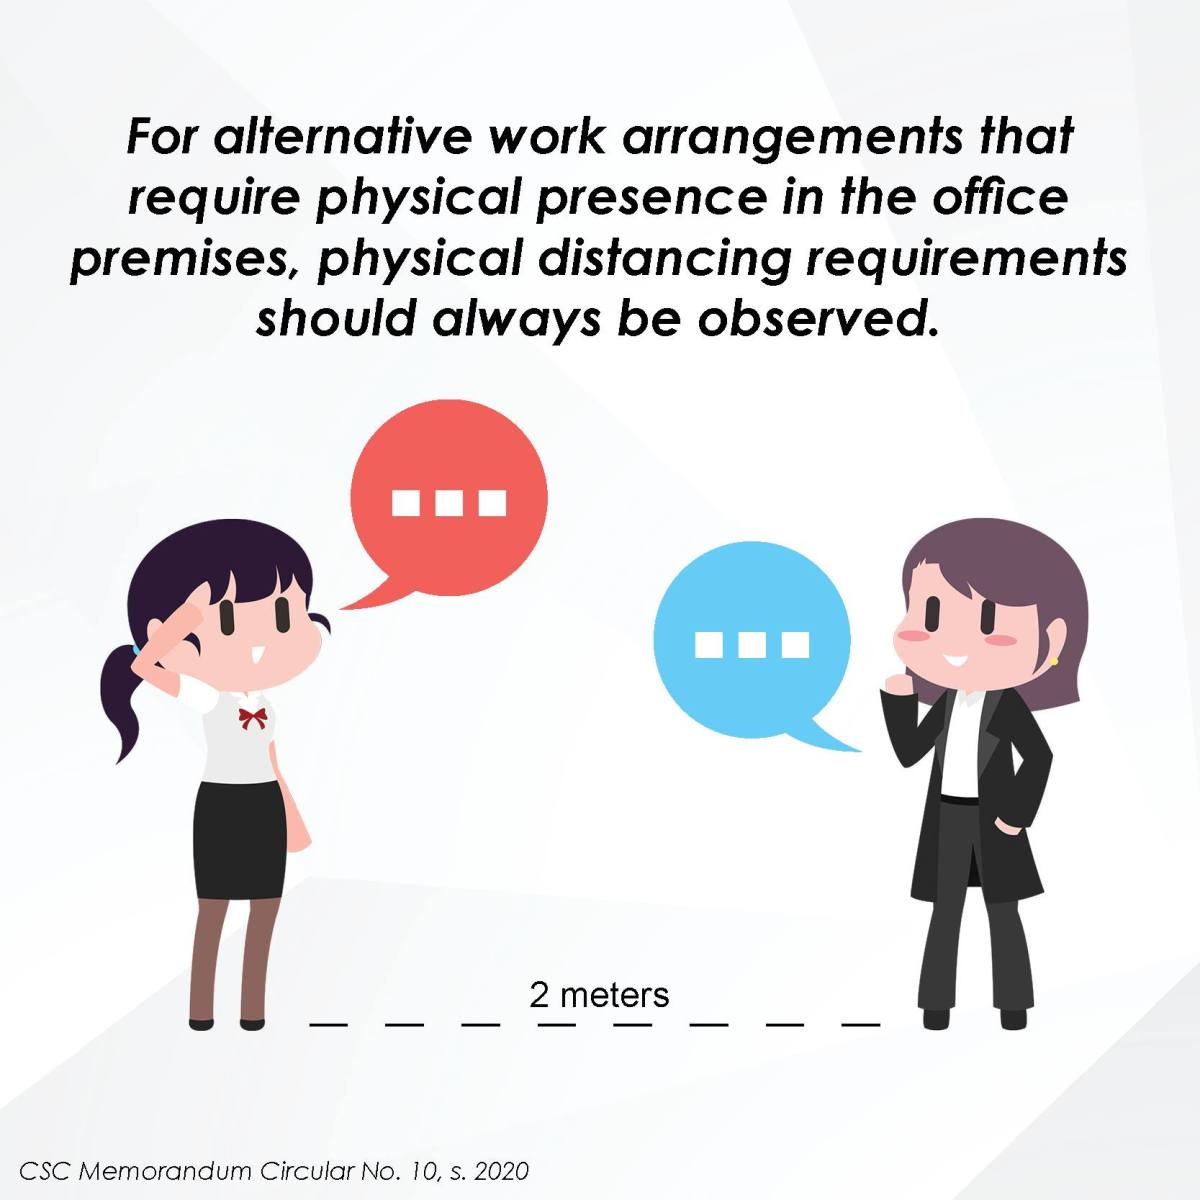 For alternative work arrangements that require physical presence